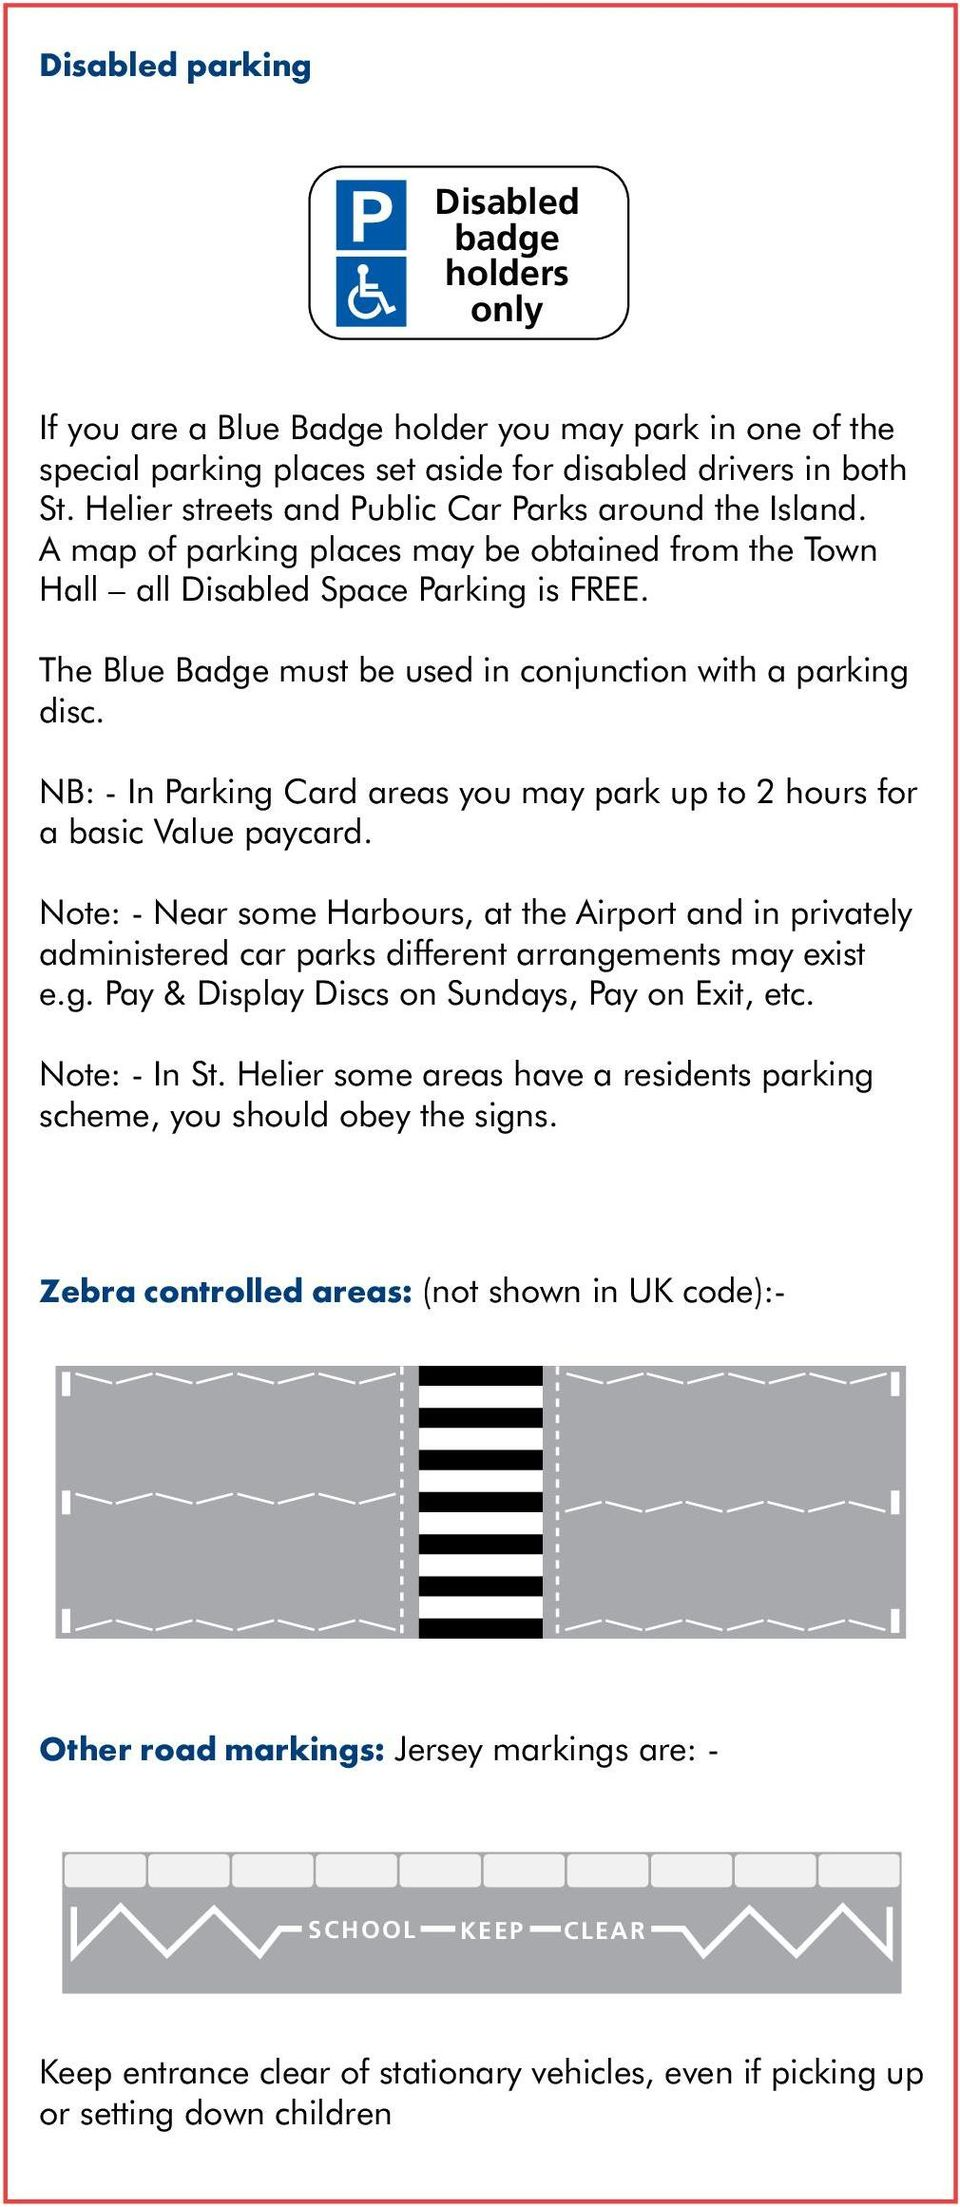 The Blue Badge must be used in conjunction with a parking disc. NB: - In Parking Card areas you may park up to 2 hours for a basic Value paycard.